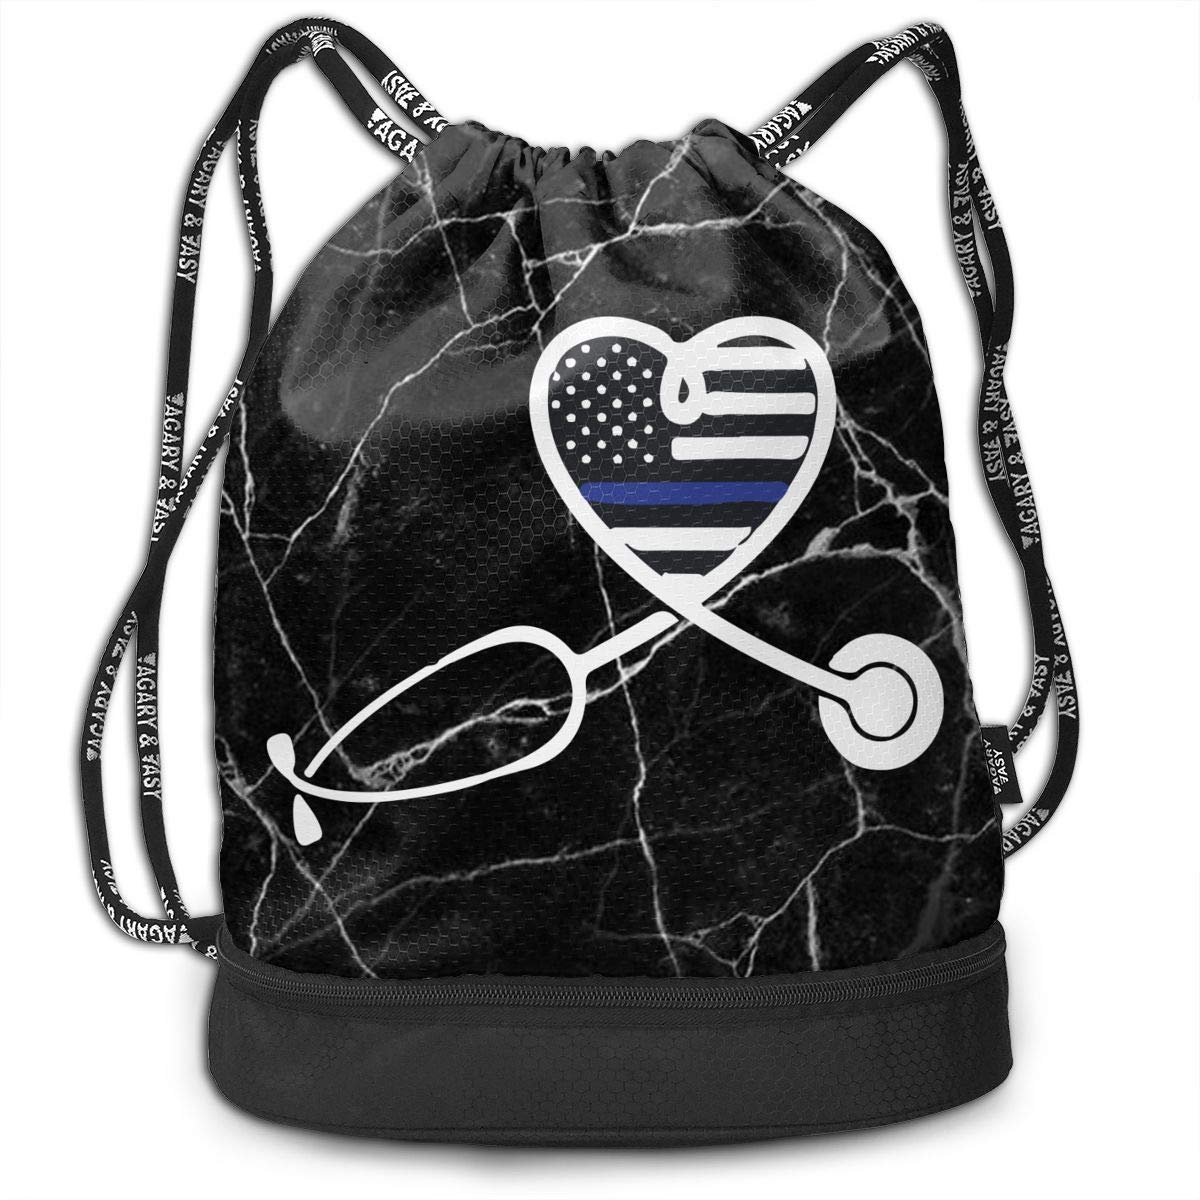 SG0HGO Drawstring Pack Nurse Wife Police Officer Heart Men /& Women Gym Sport Yoga Shoulder Bags